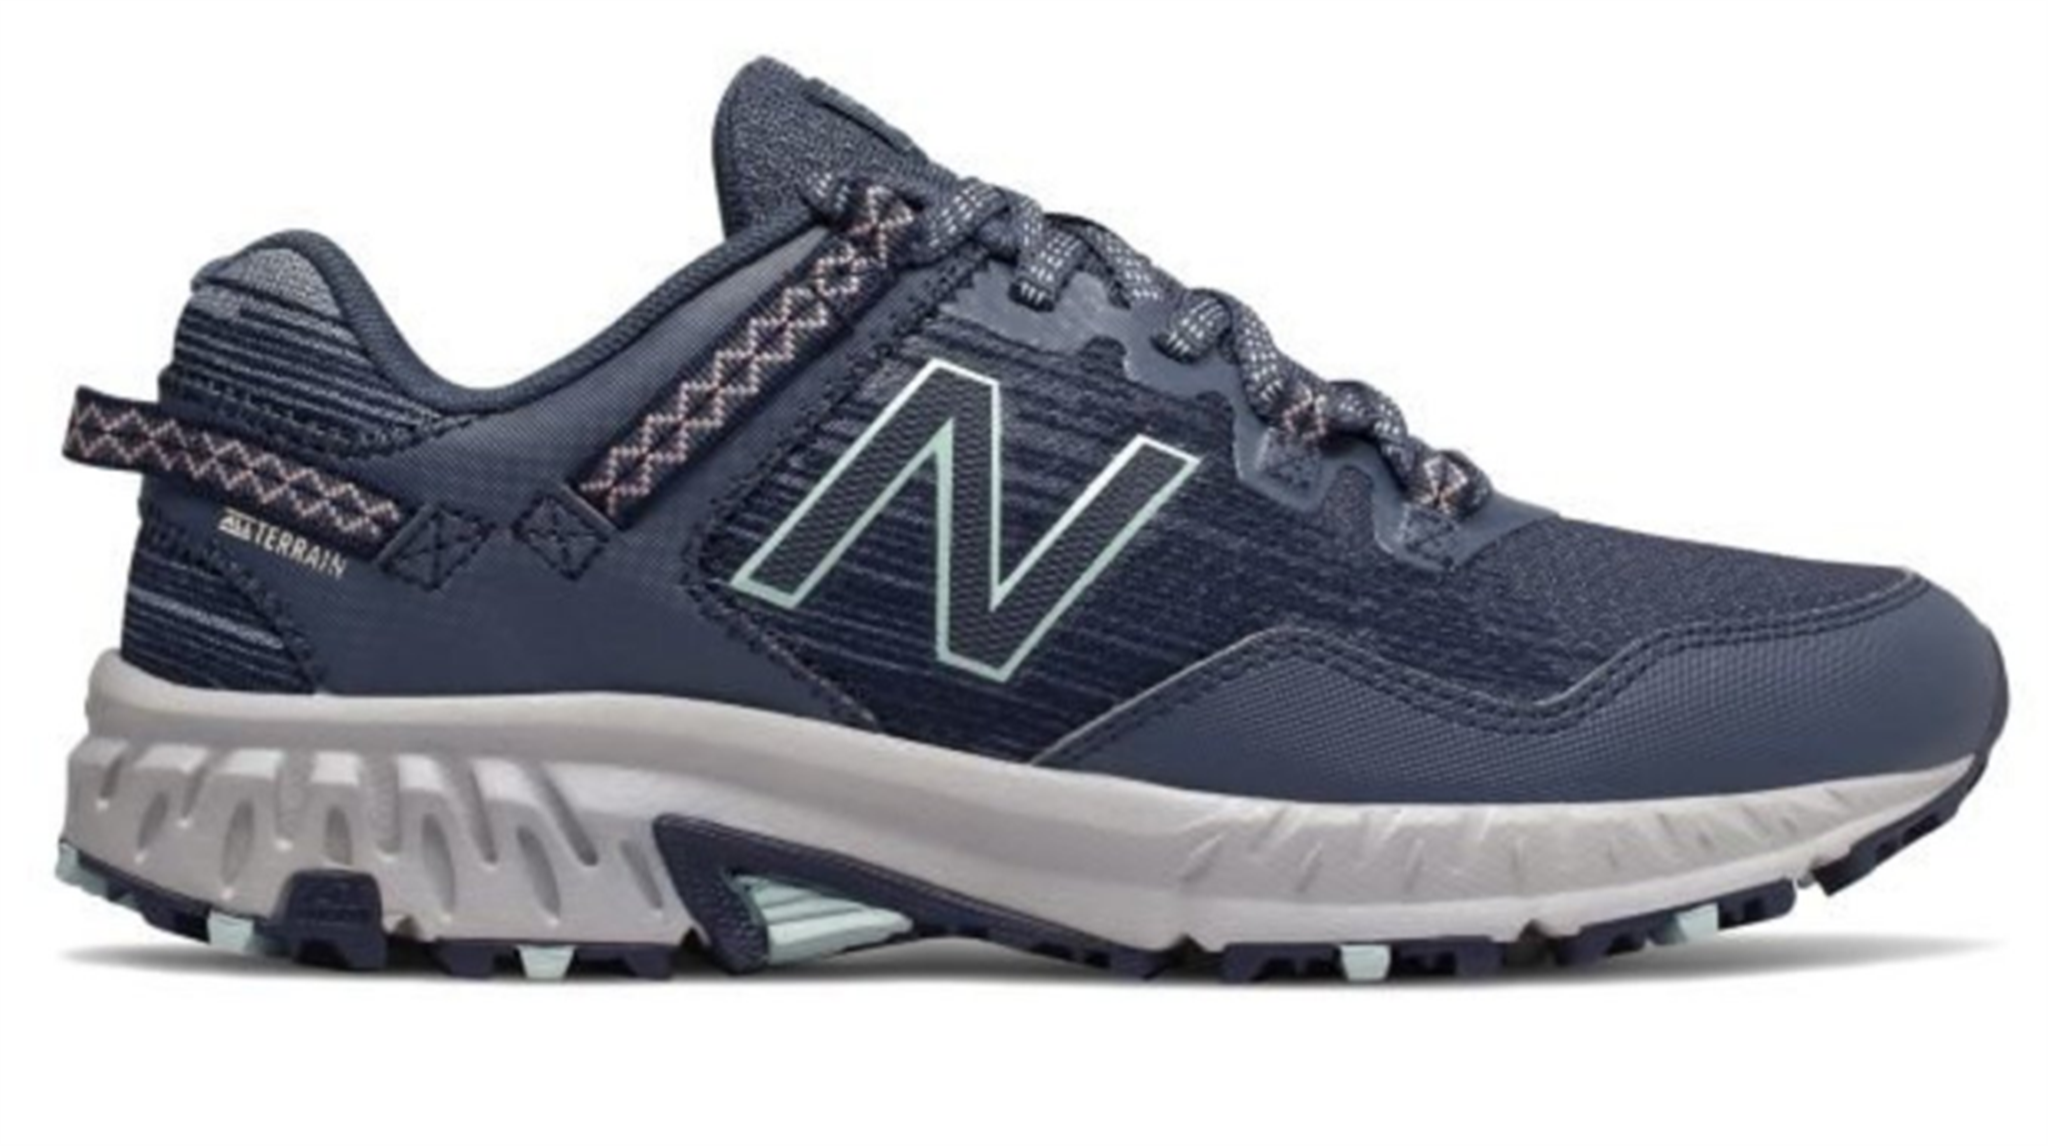 New Balance (Men's AND Women's) Running Shoes Only $25.00, Reg $69.99 + Free Shipping!